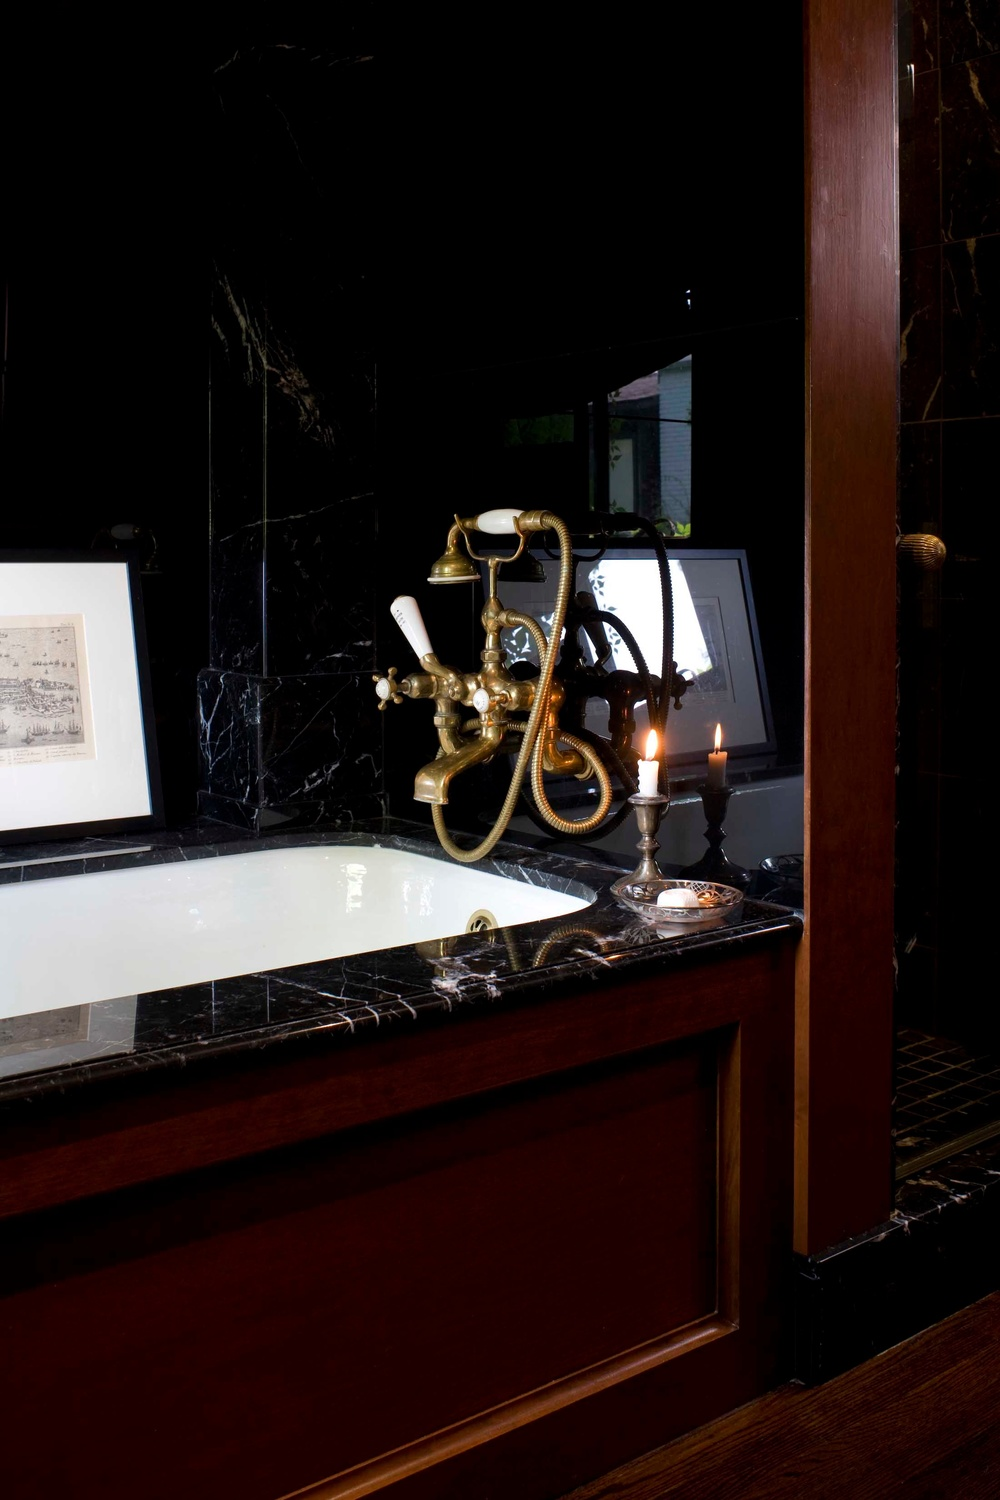 The Ensuite with the brass faucet.